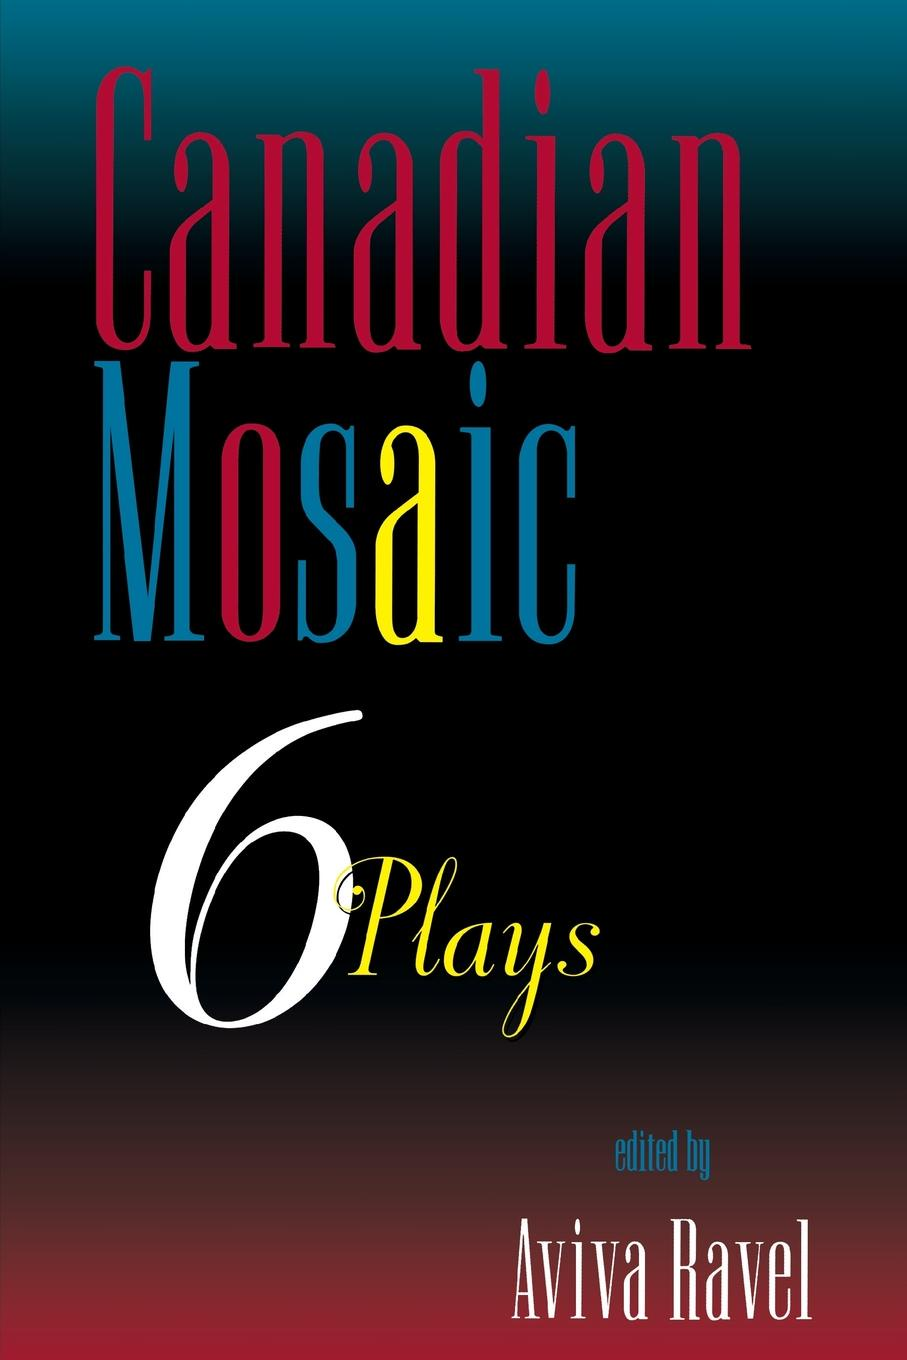 Canadian Mosaic. 6 Plays plays